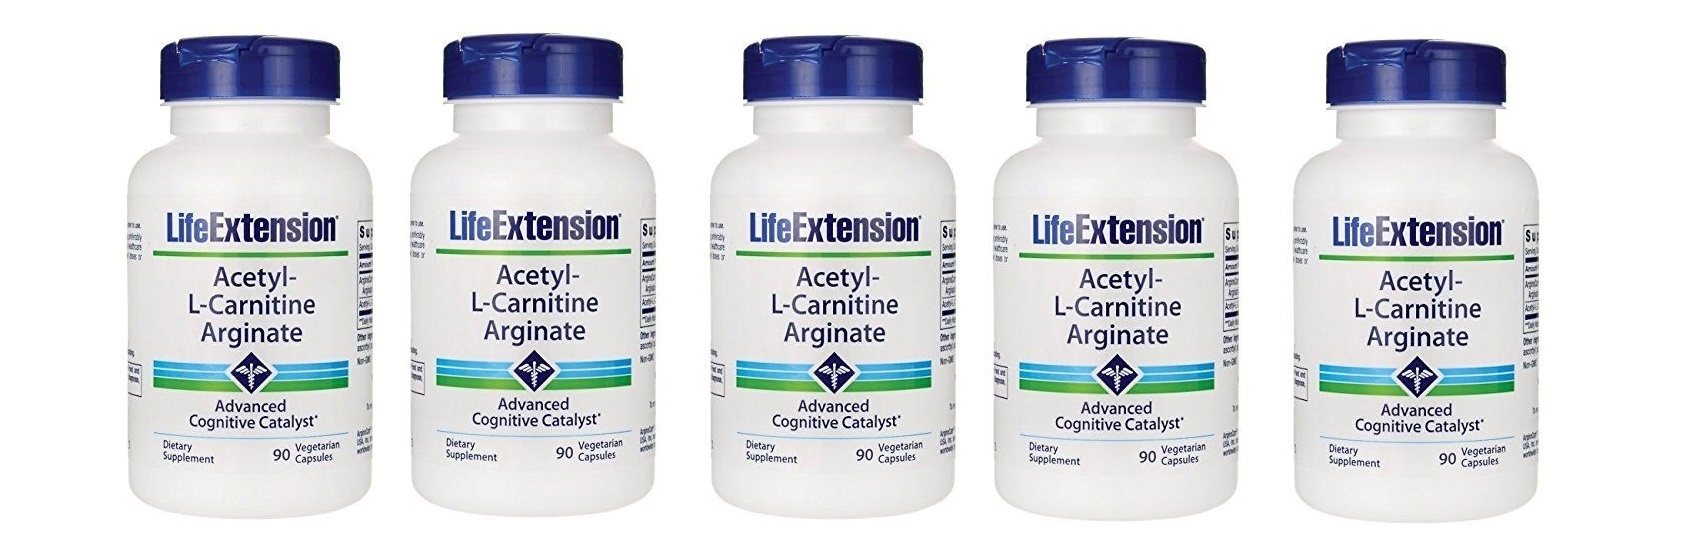 Life Extension Acetyl-L-Carnitine Arginate, 90 Vegetarian Capsules, 5-pack